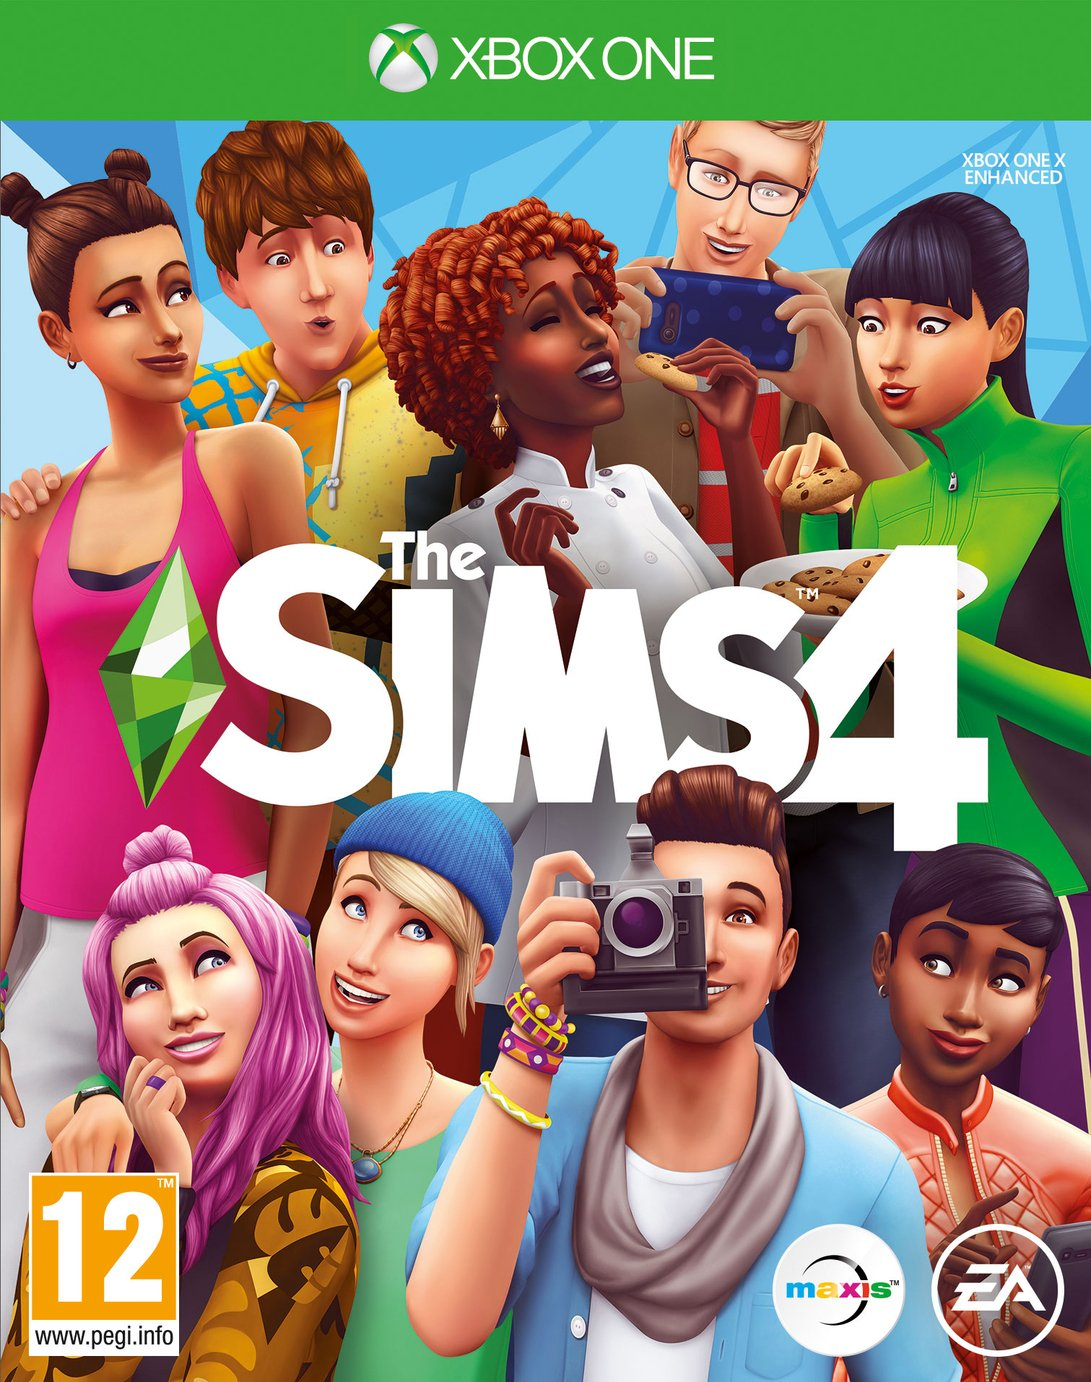 Image of The Sims 4 Xbox One Game